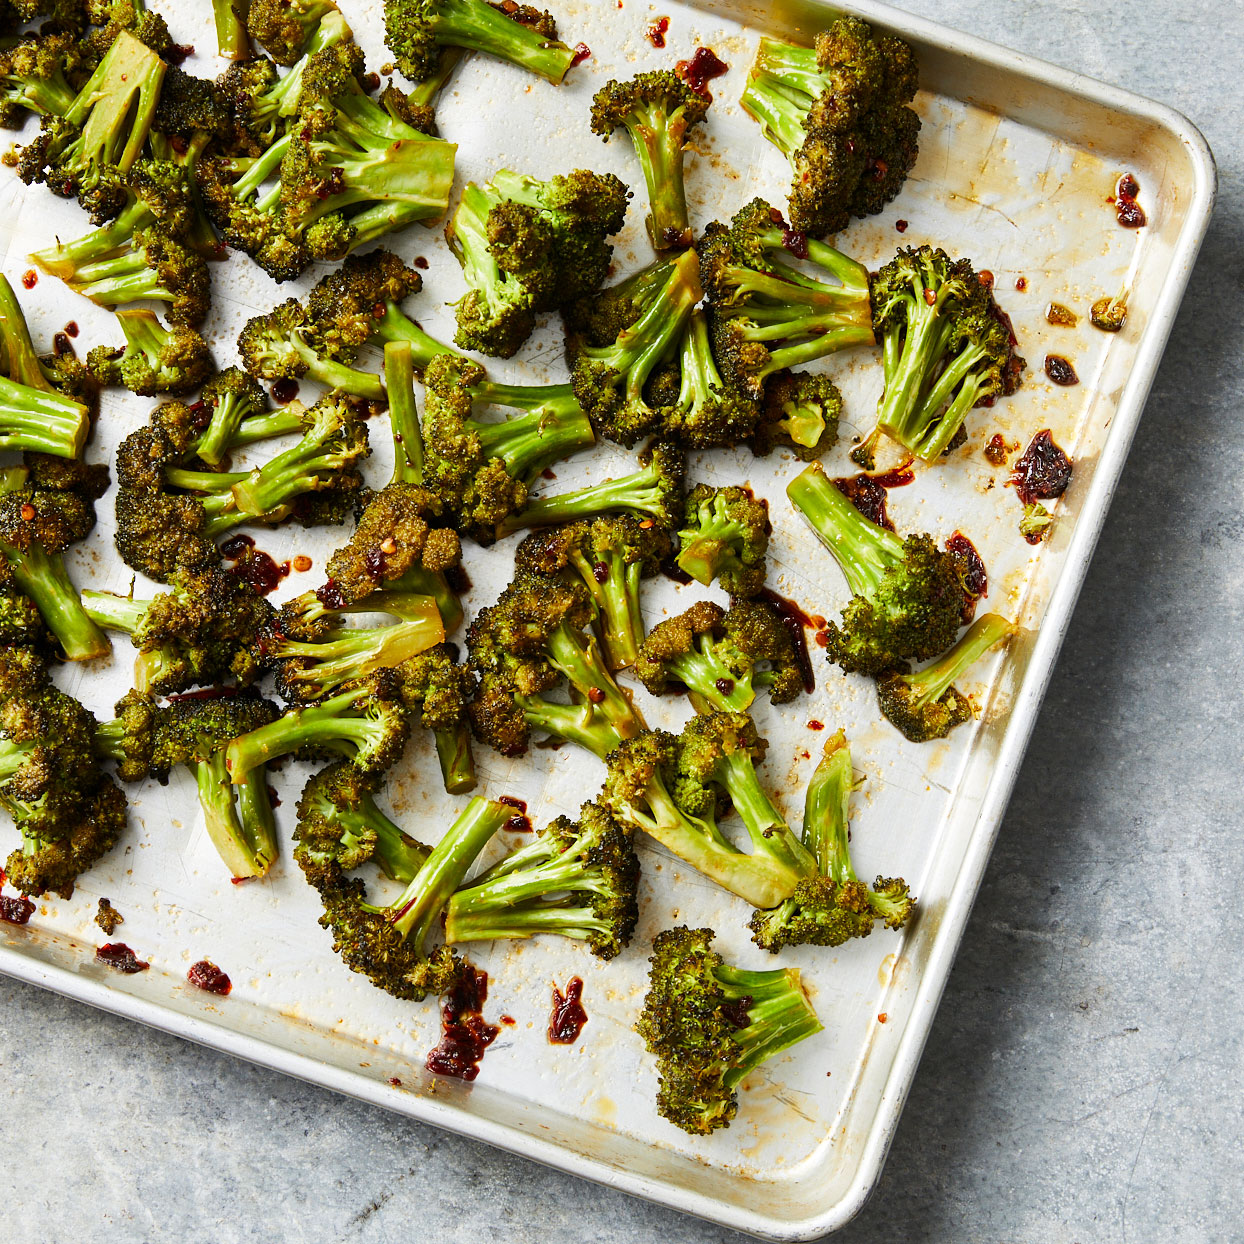 Honey and chipotle peppers coat roasted broccoli in this sweet and smoky side dish. Serve alongside grilled pork, roasted chicken or with any main dish that could use some kick. Source: EatingWell.com, July 2020